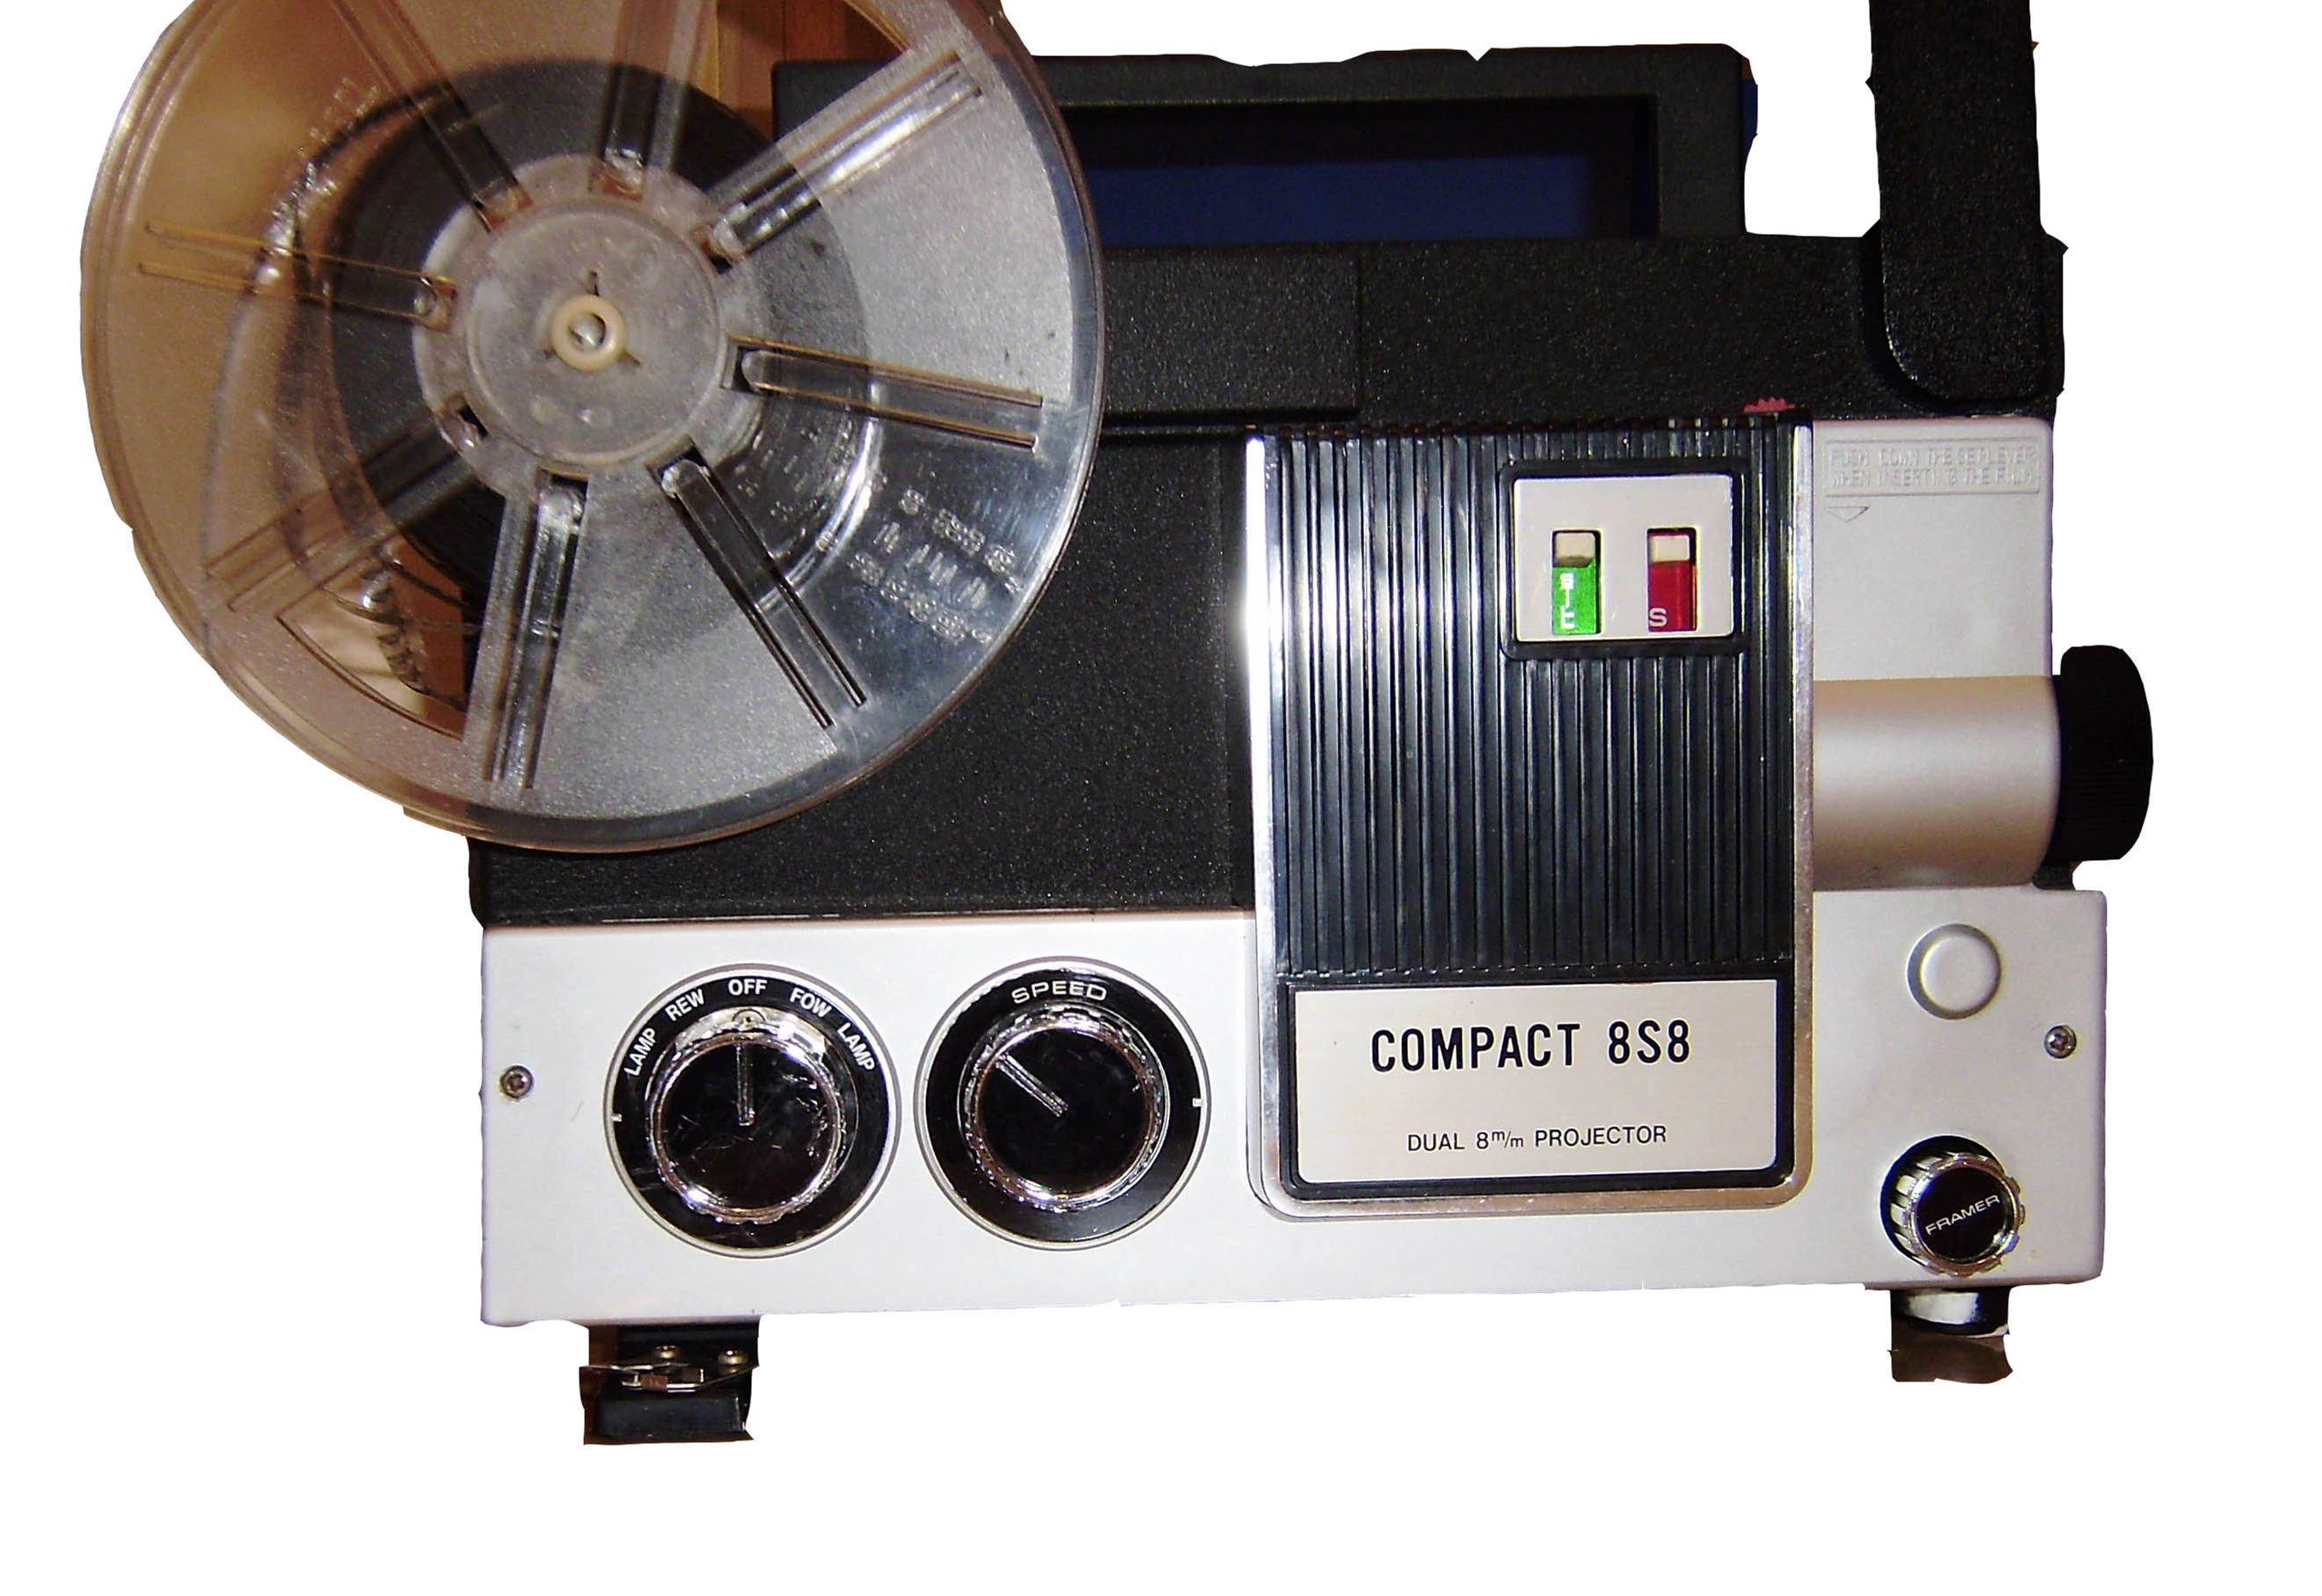 8S8 dual 8mm projector